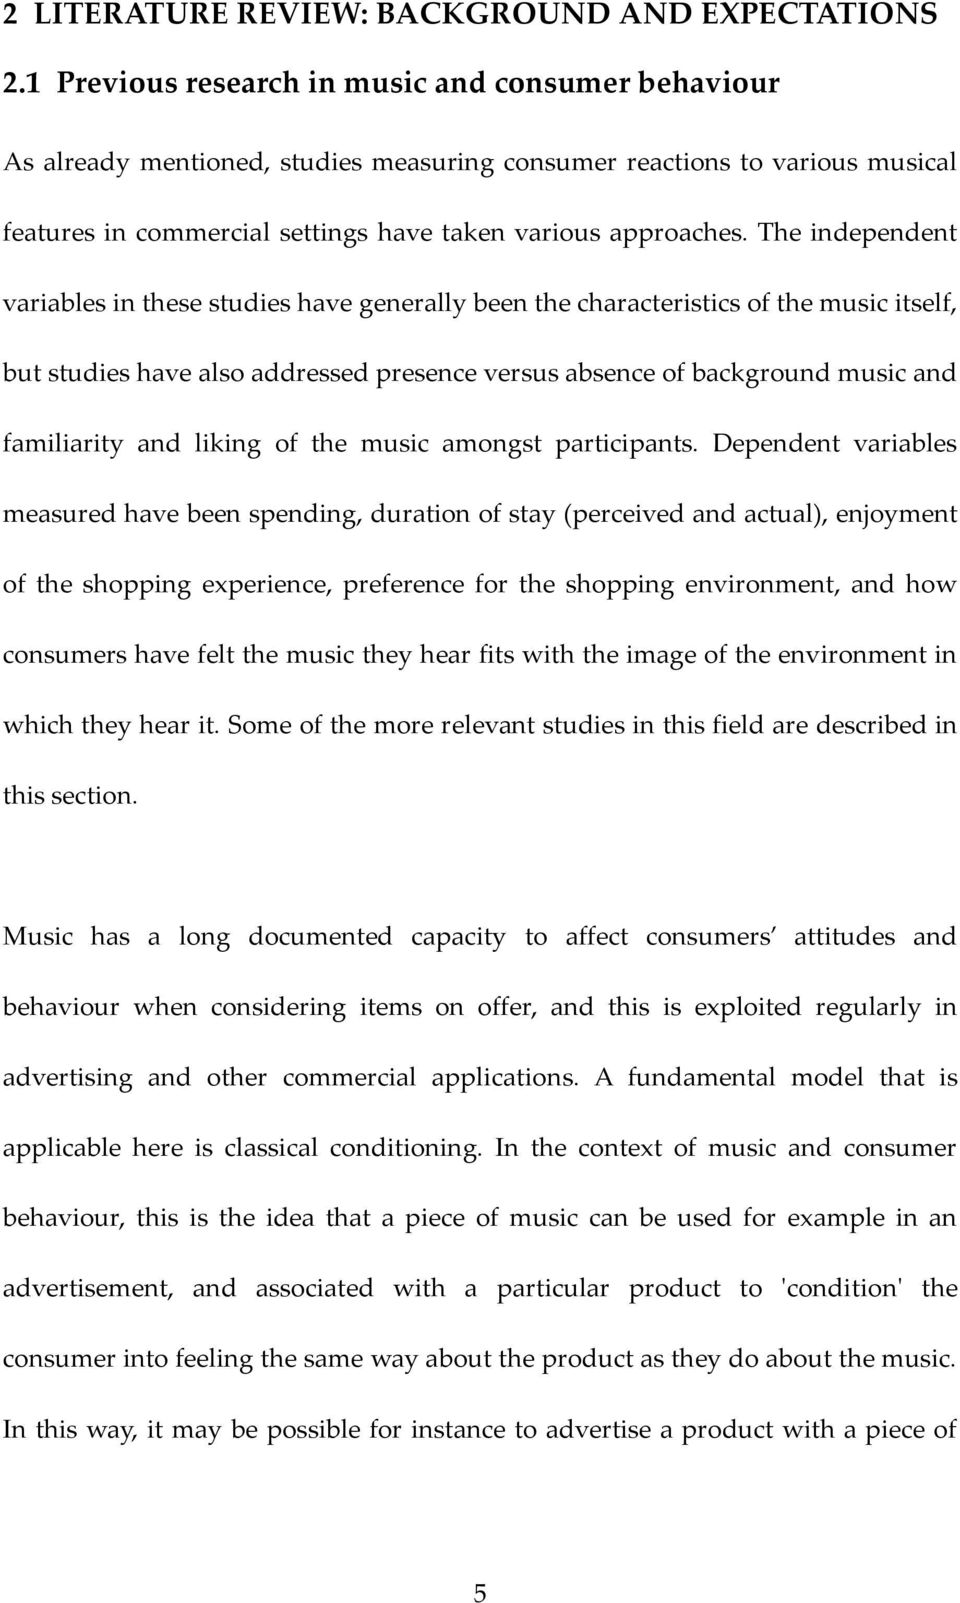 The independent variables in these studies have generally been the characteristics of the music itself, but studies have also addressed presence versus absence of background music and familiarity and